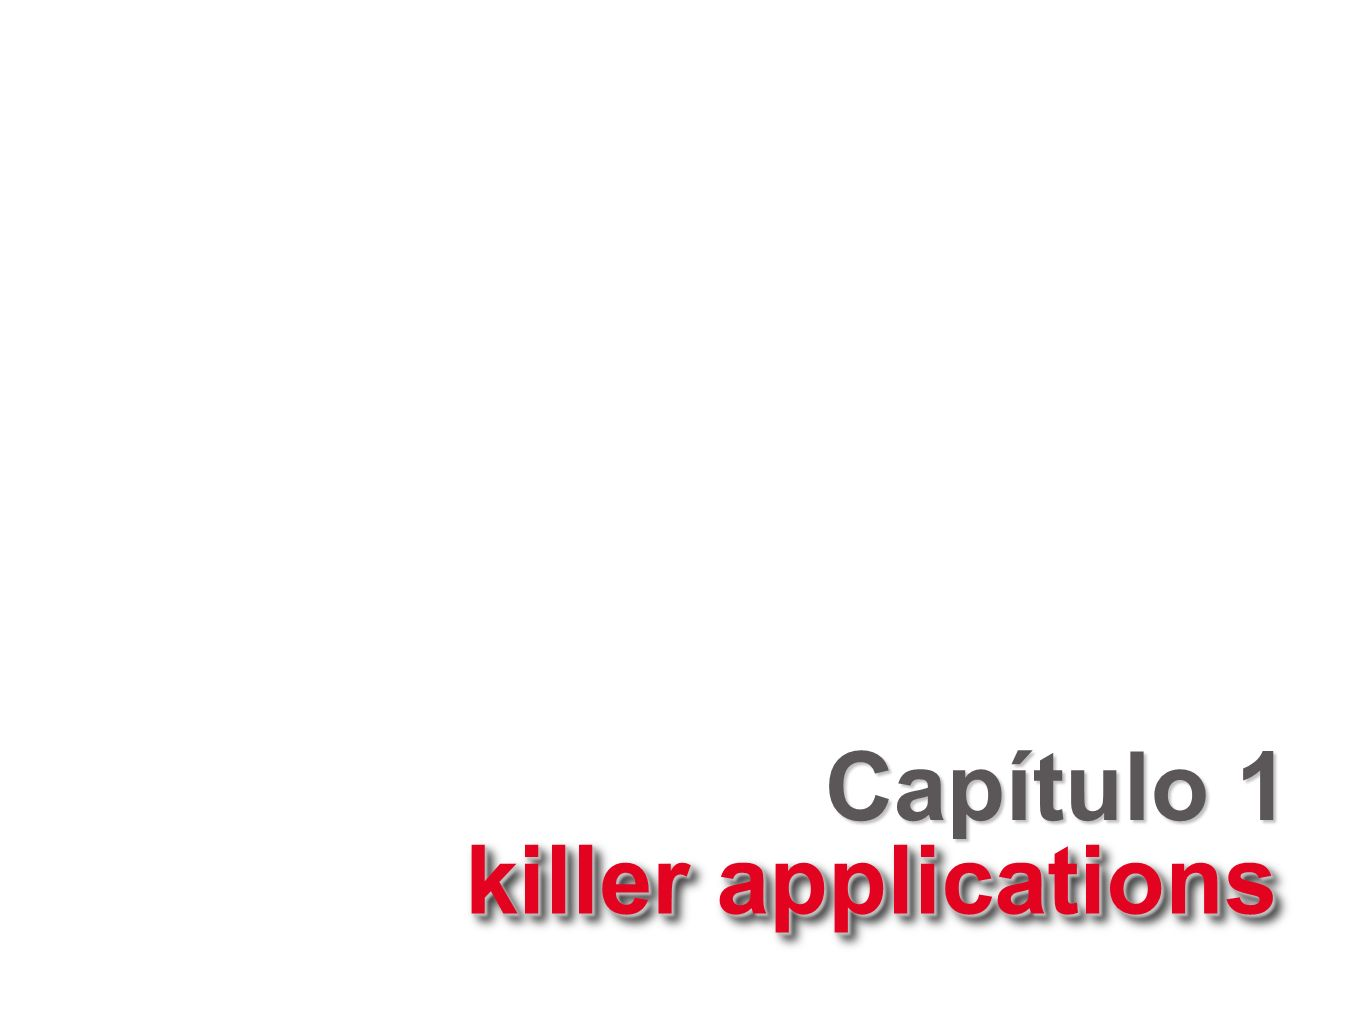 Capítulo 1 killer applications